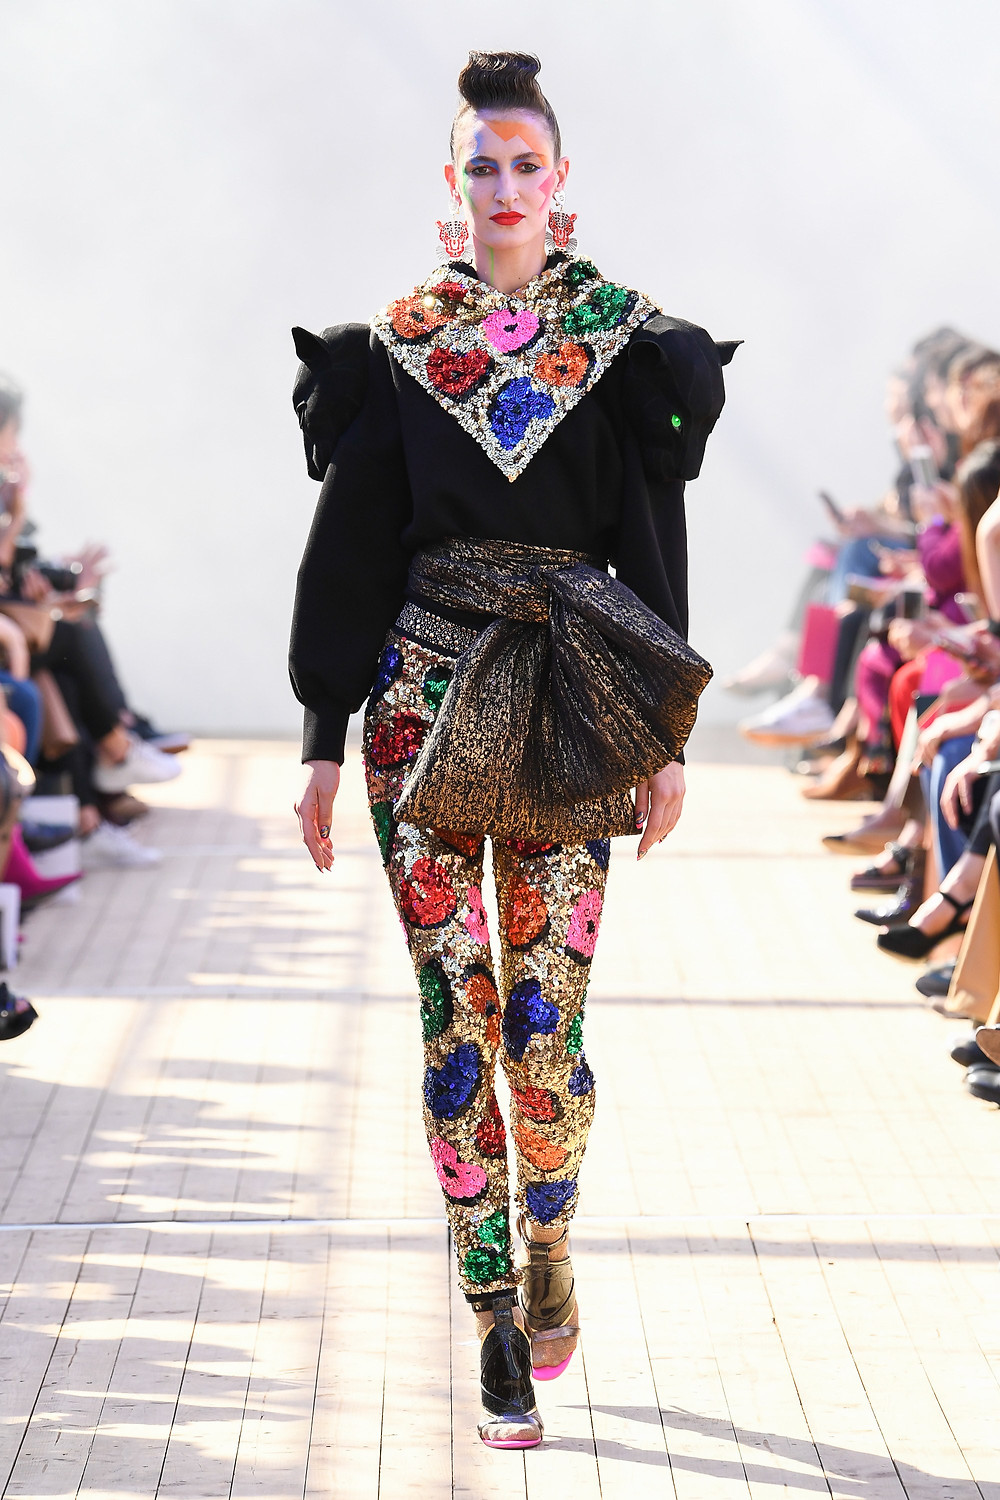 Model wearing Manish Arora fashion designs.